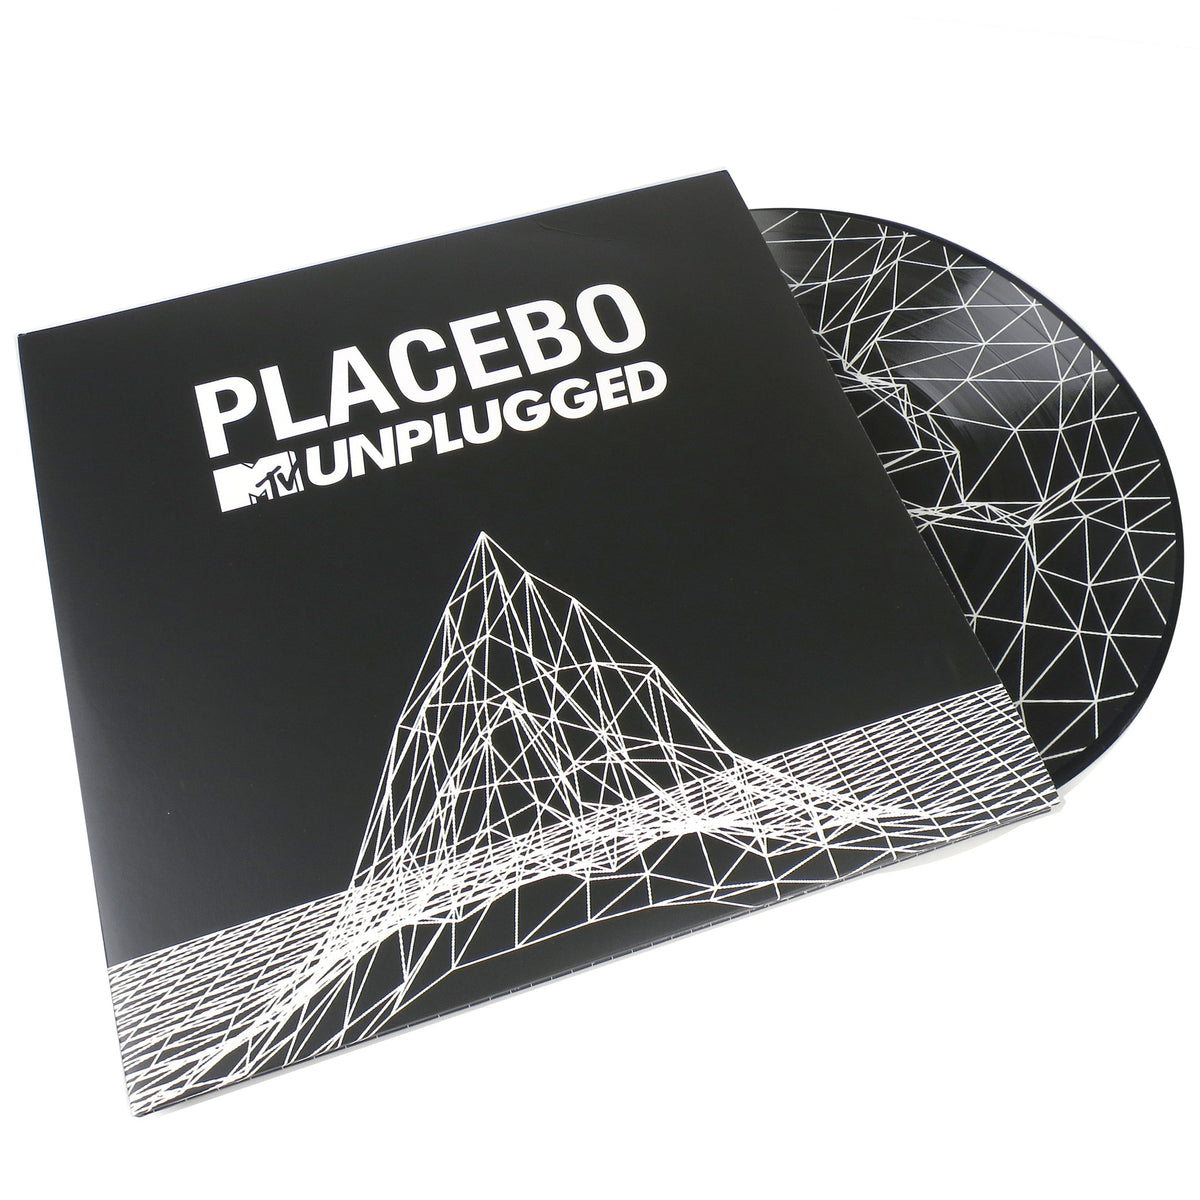 Placebo: MTV Unplugged (Pic Disc) Vinyl 2LP